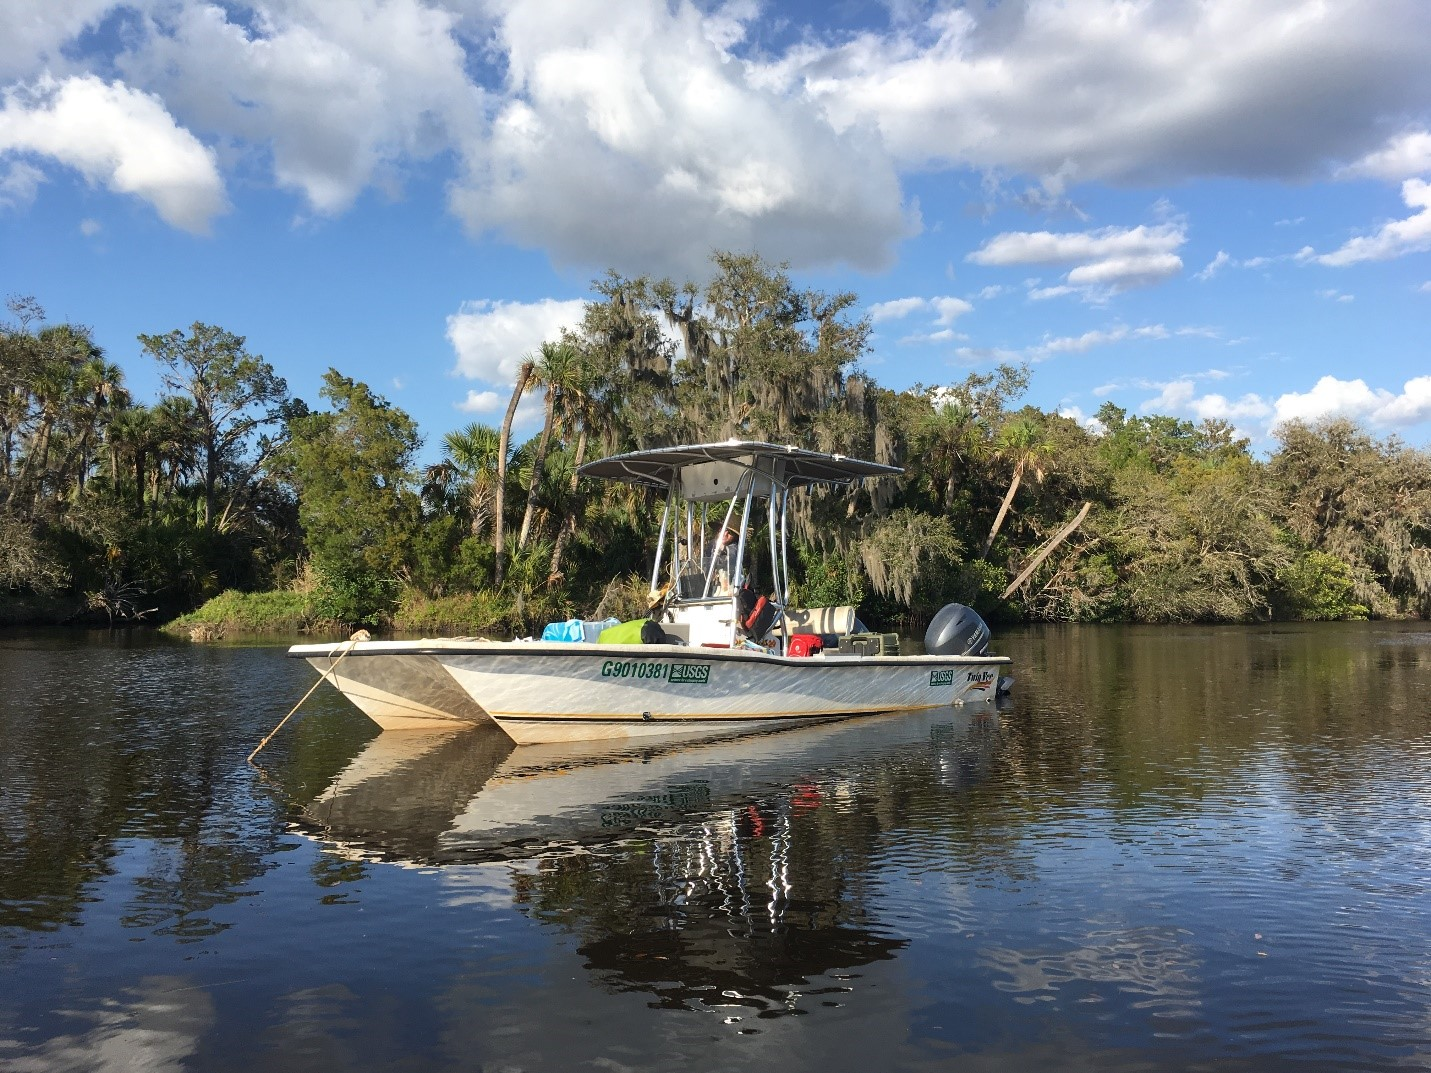 24-hour sampling in full swing upstream on the Manatee River.